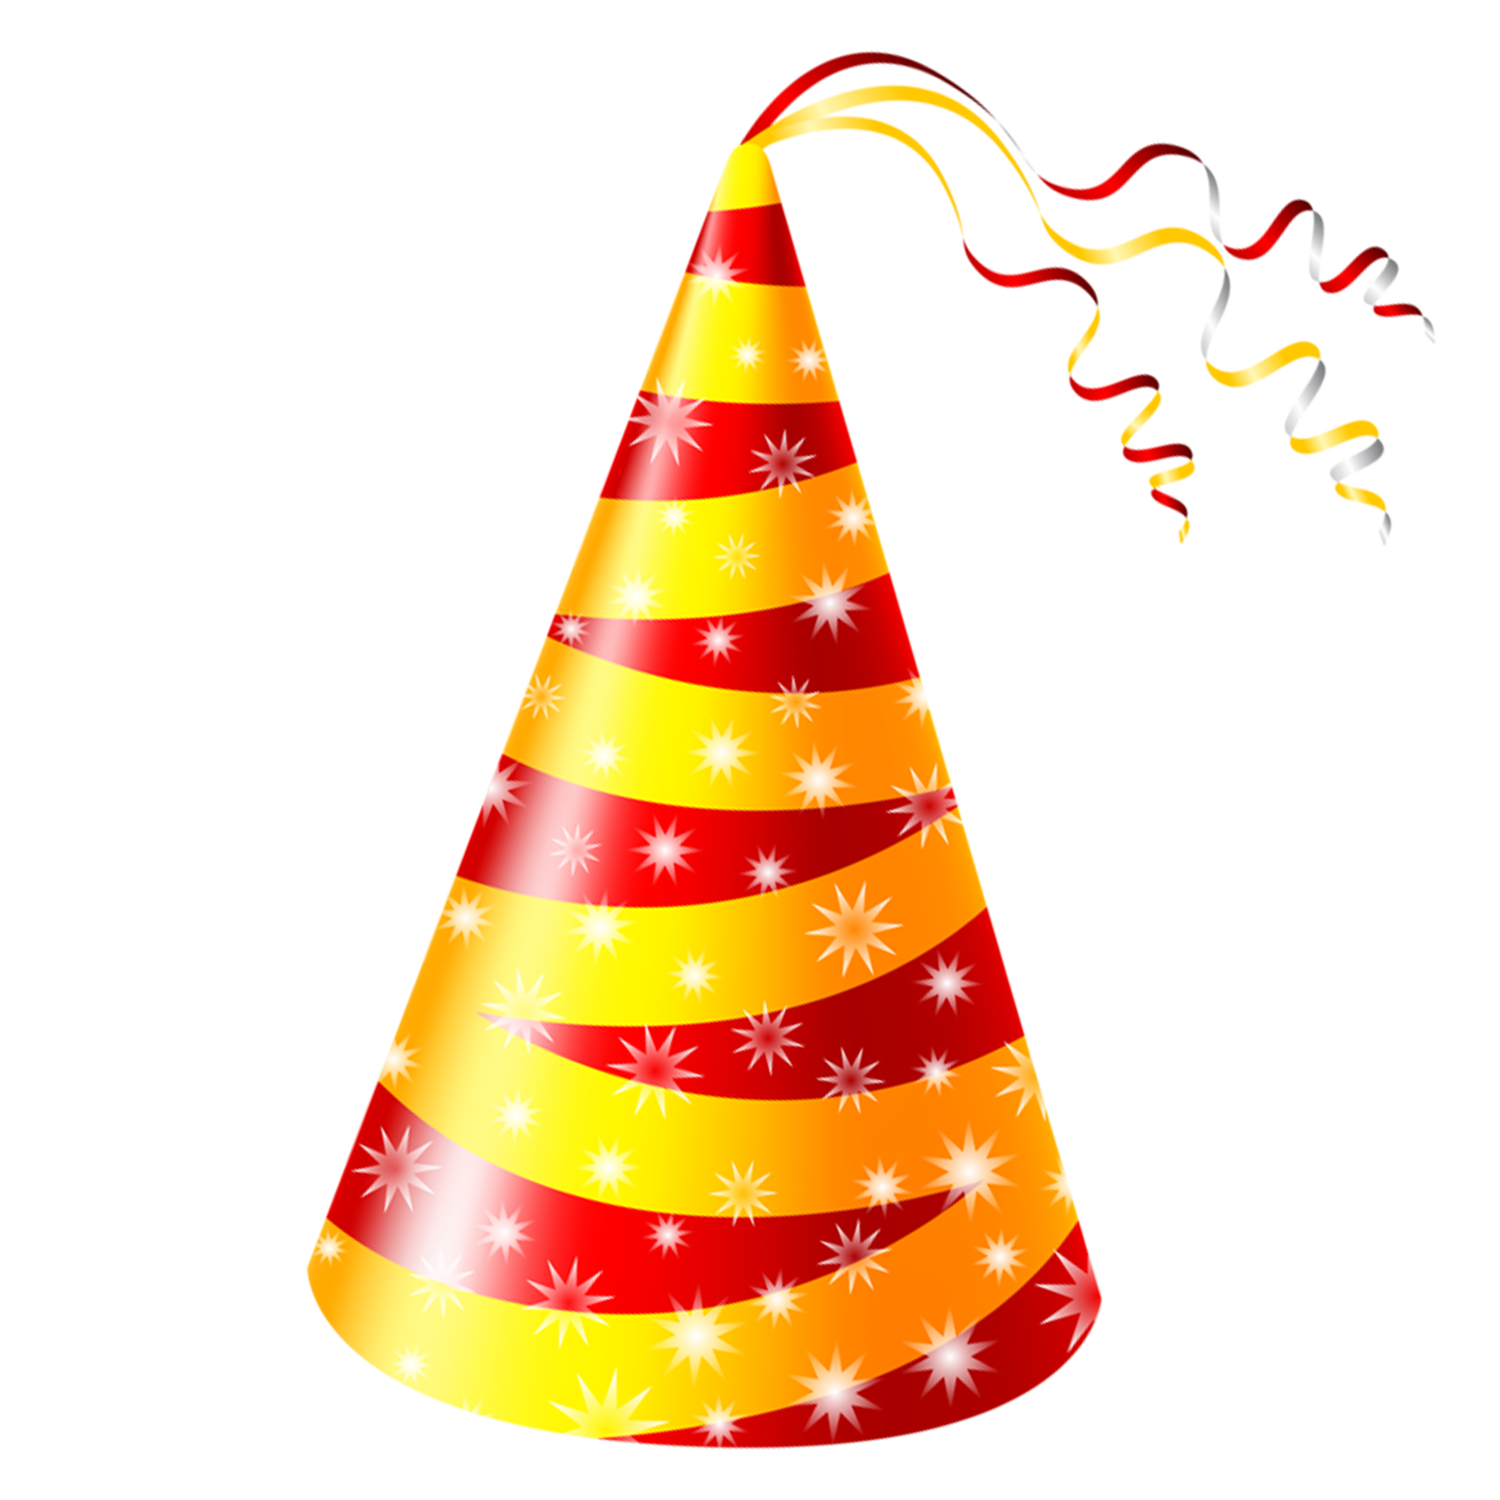 Hats clipart bday. Birthday cake party hat